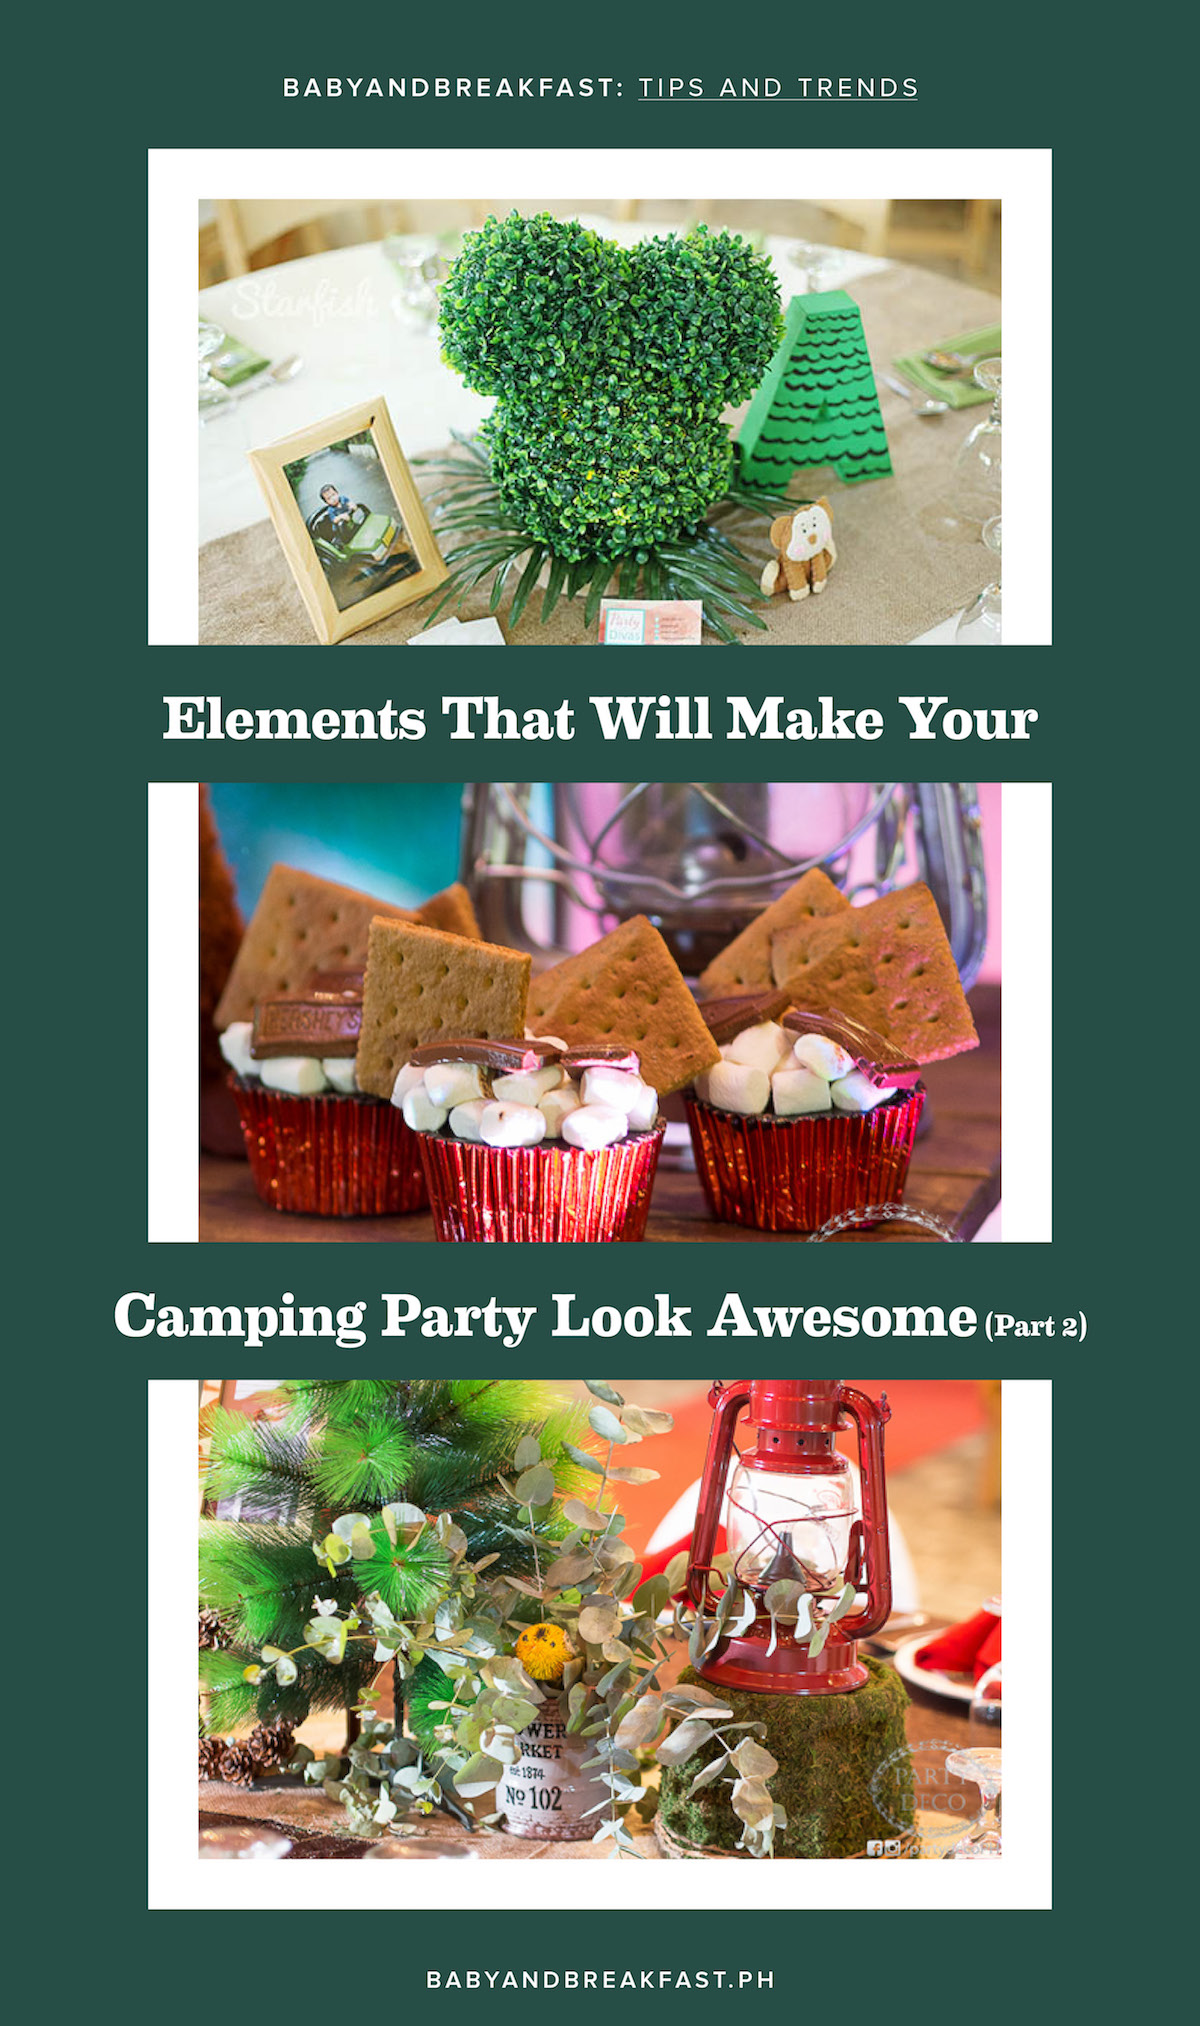 Baby and Breakfast: Tips and Trends Elements That Will Make Your Camping Party Look Awesome (Part 2)